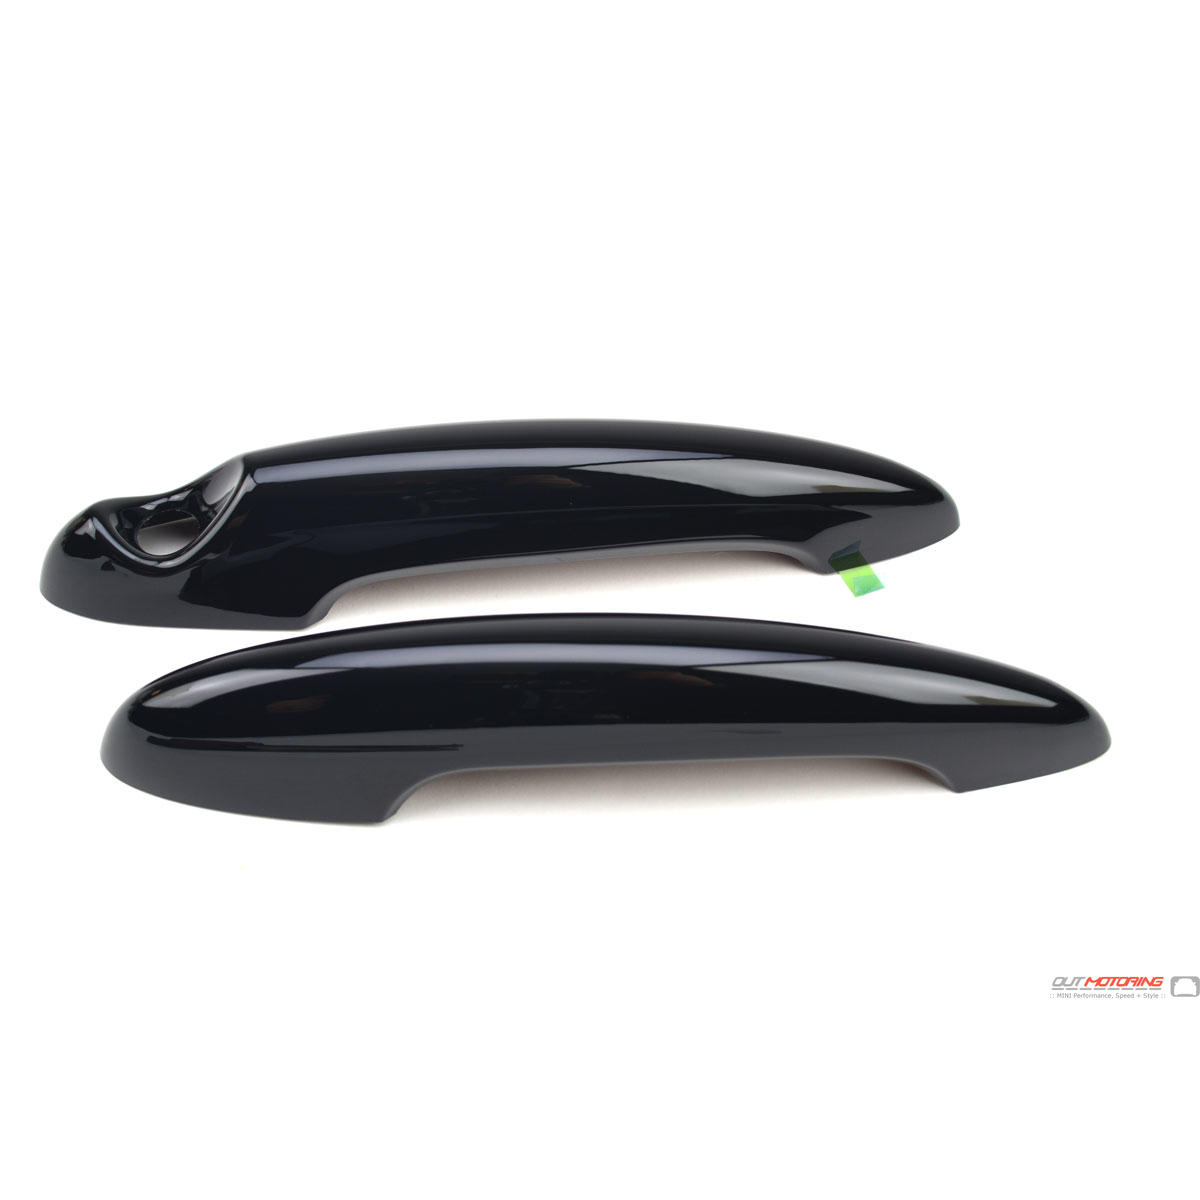 Cooper Drivers Door Handle Fit For Mini Cooper S R50 R53 R56 R57 R58 R59 Black